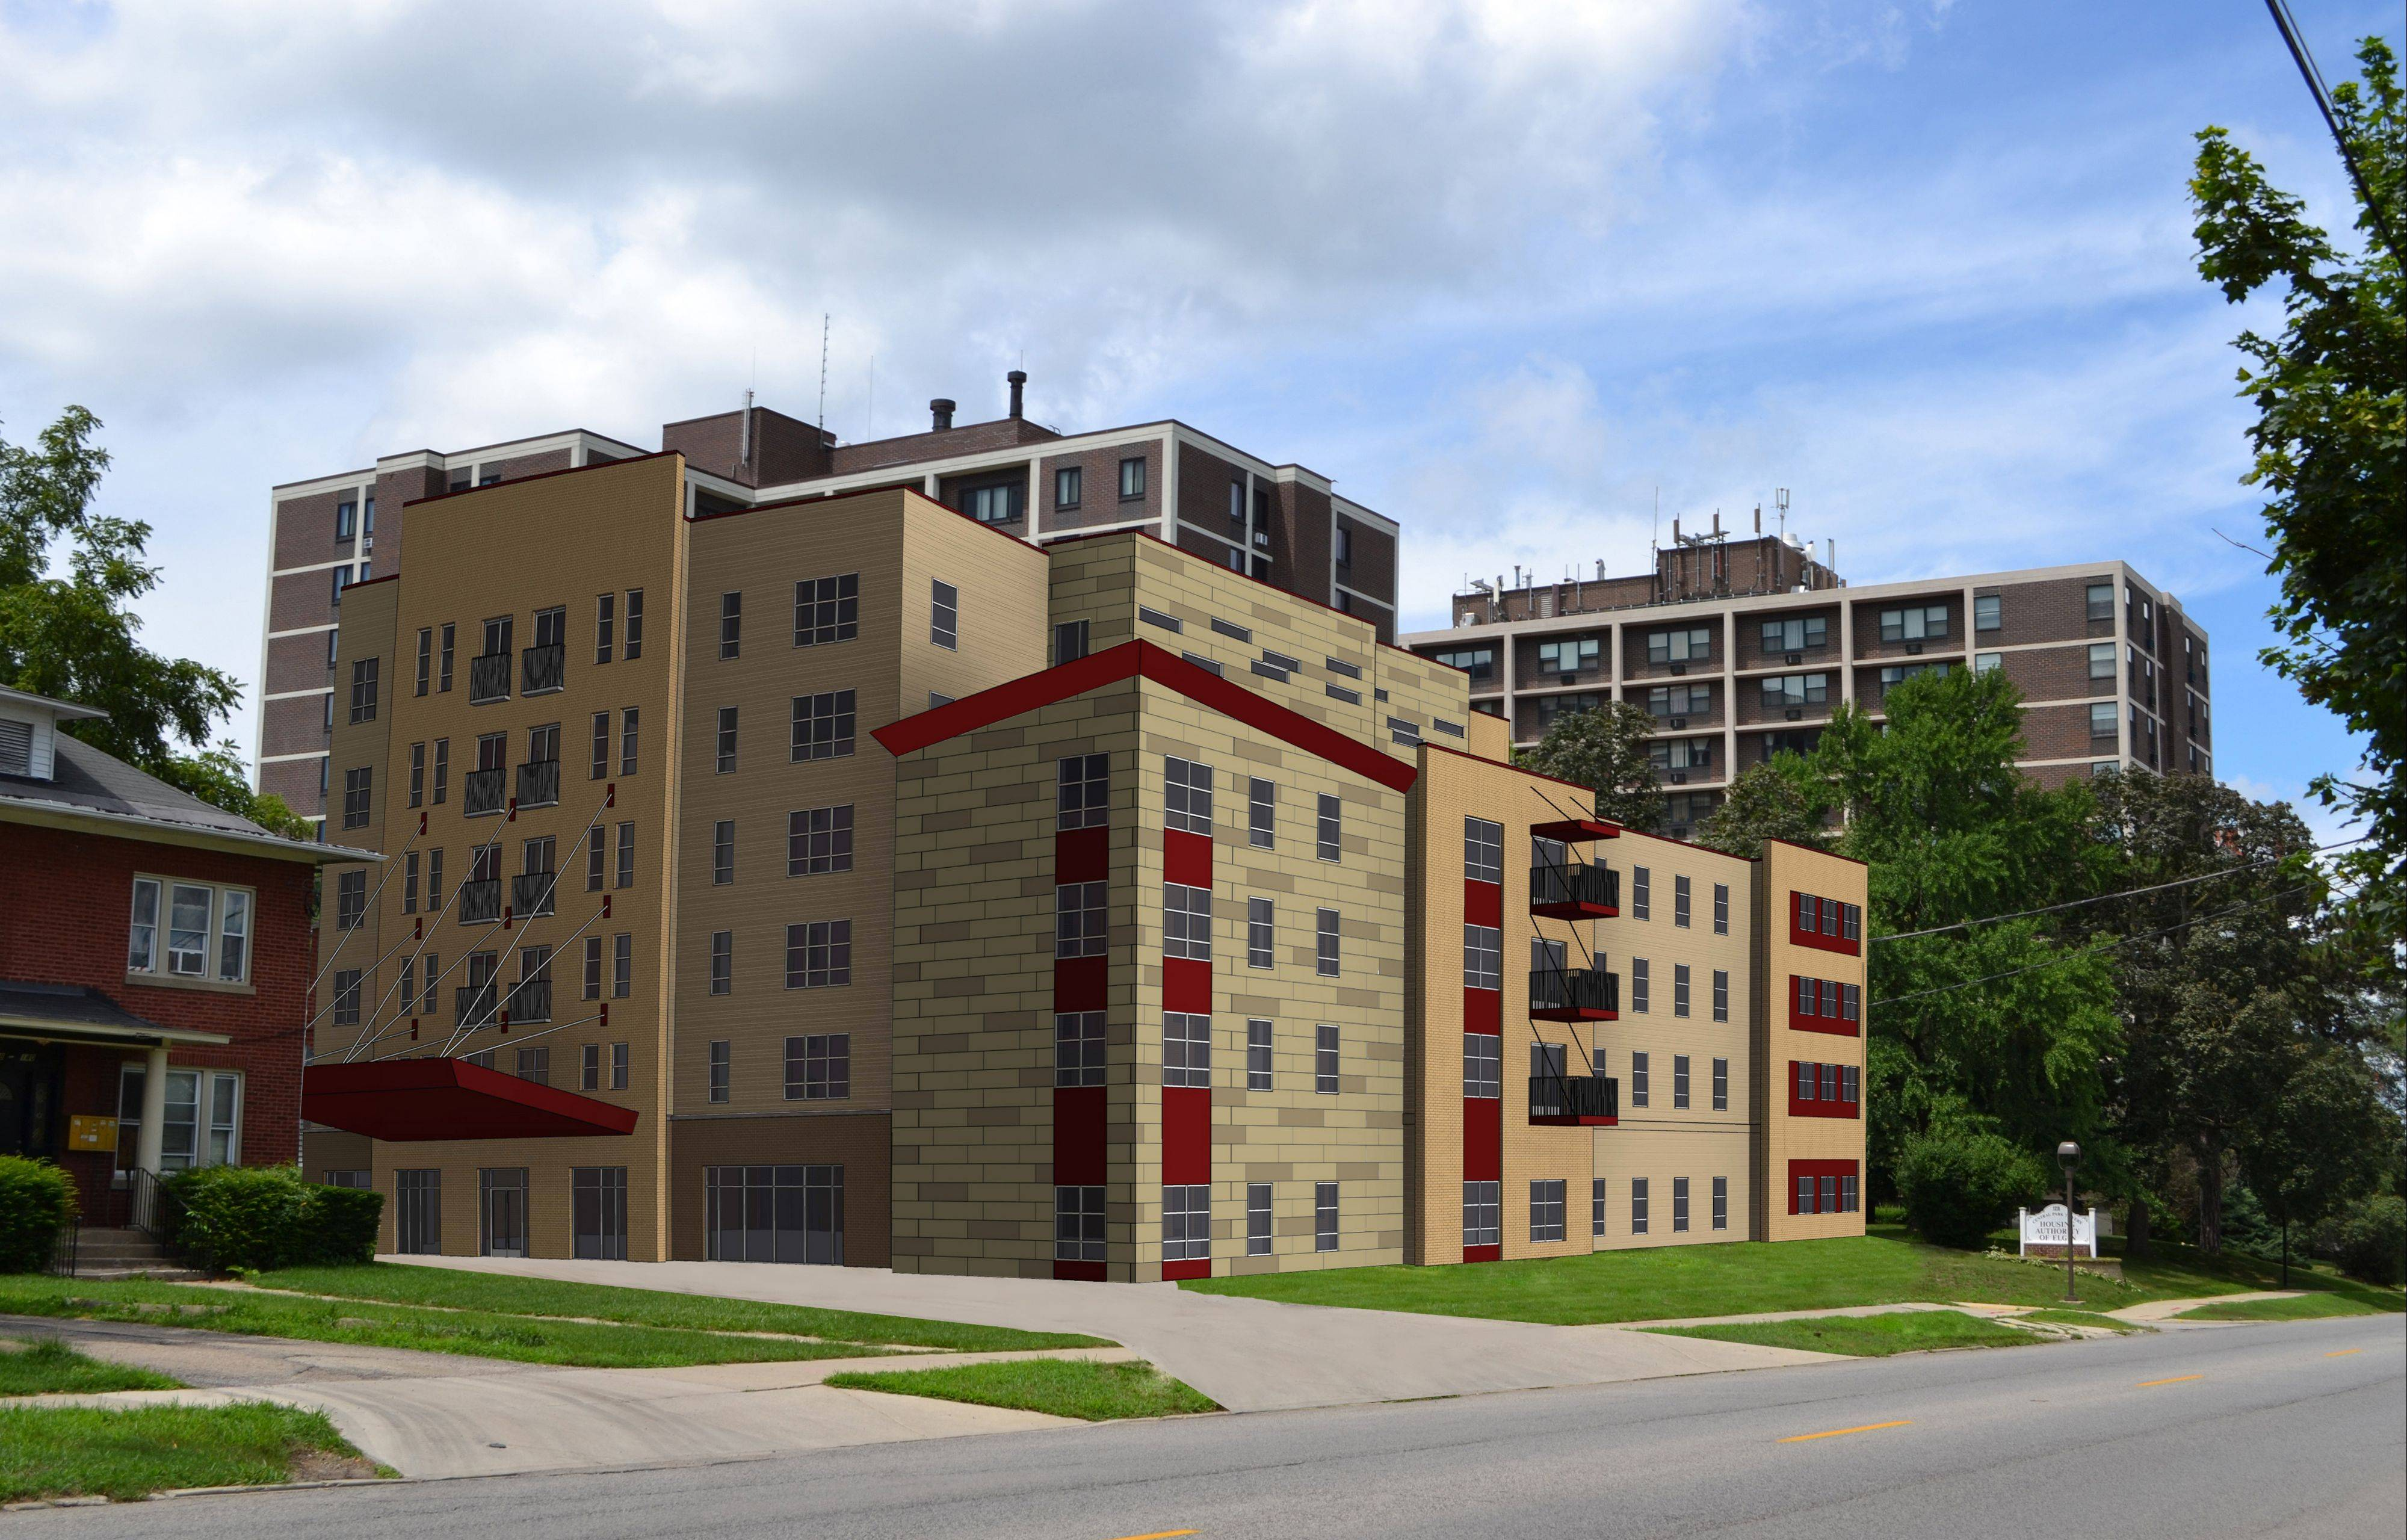 This rendering by Excel Engineering shows a proposed six-story building that the Housing Authority of Elgin wants to build at 132 S. State St. After getting feedback about the initial design, the building�s color scheme has been toned down.